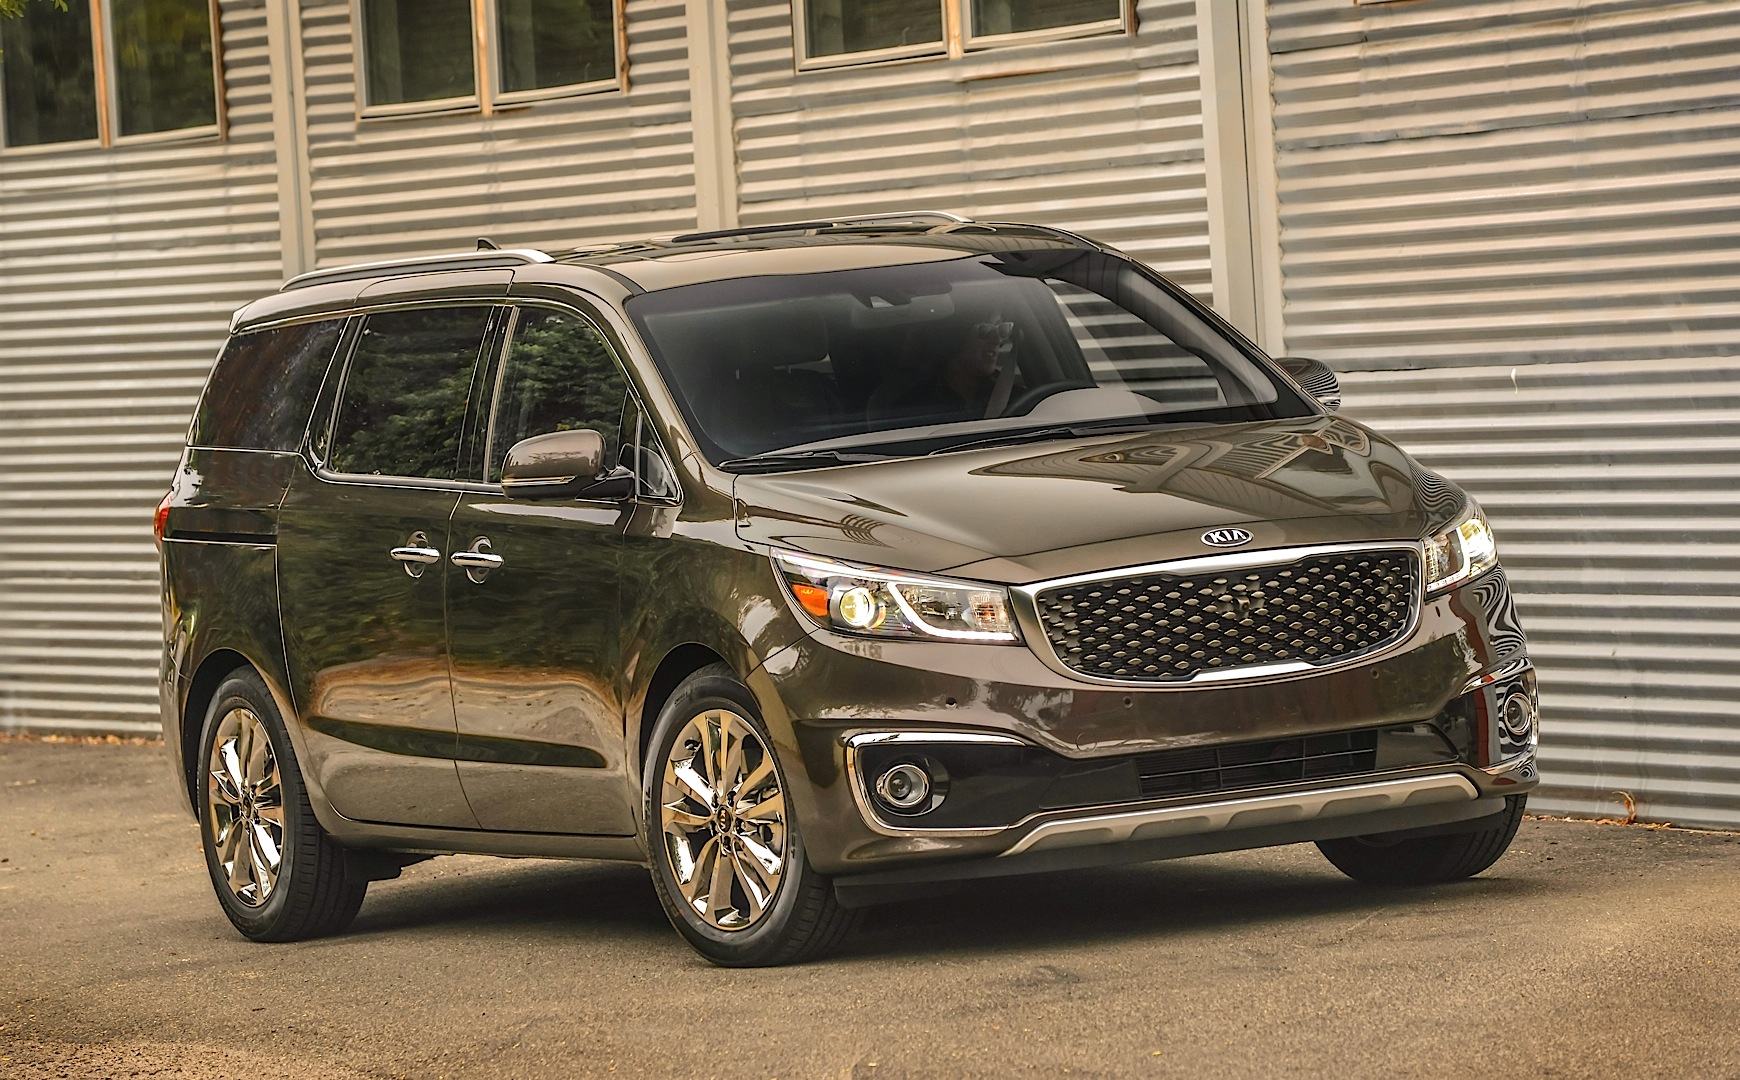 New Kia Sedona Pricing Starts at $26,795 - autoevolution